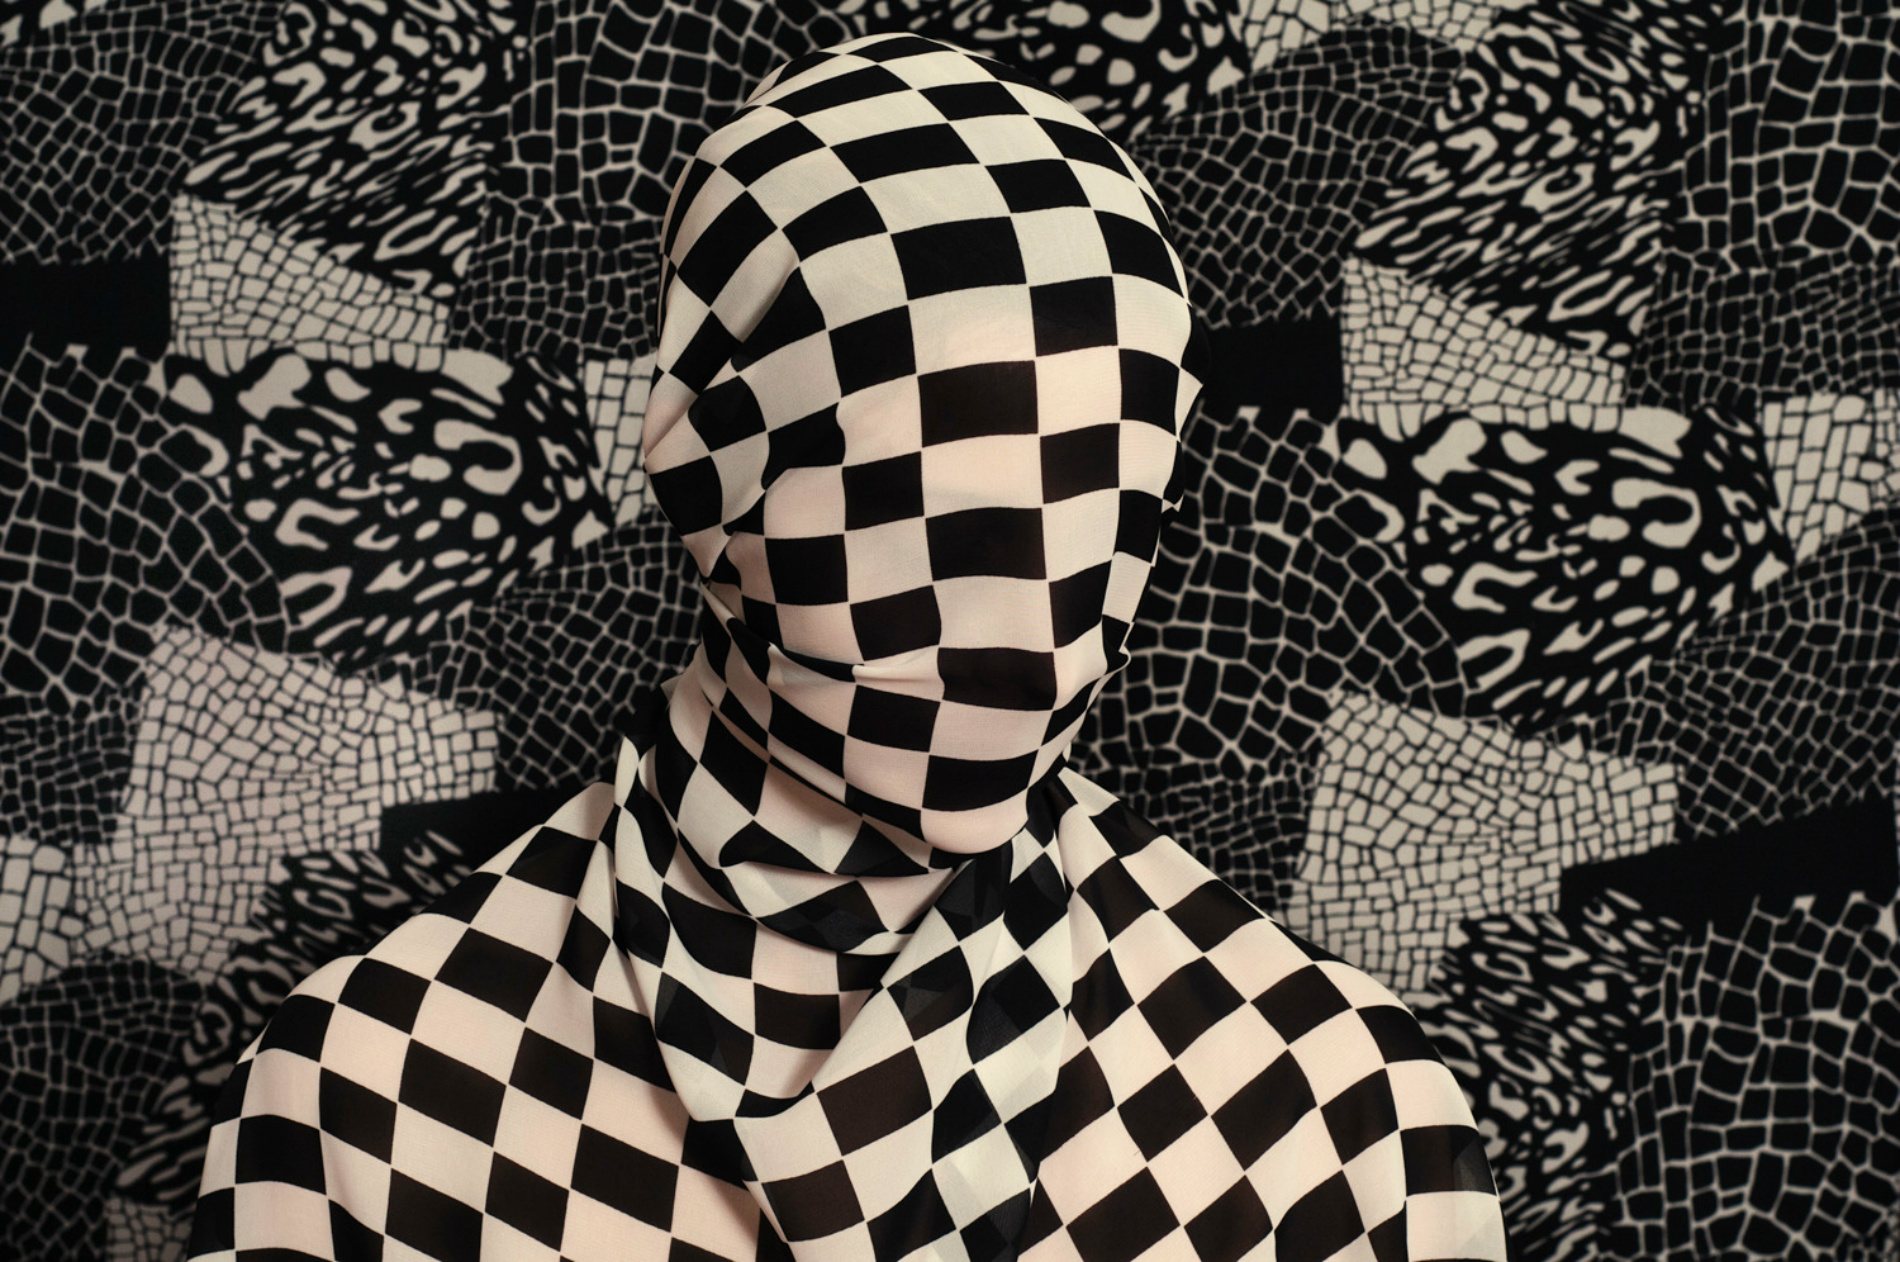 The Illusion of Pattern by Romina Ressia